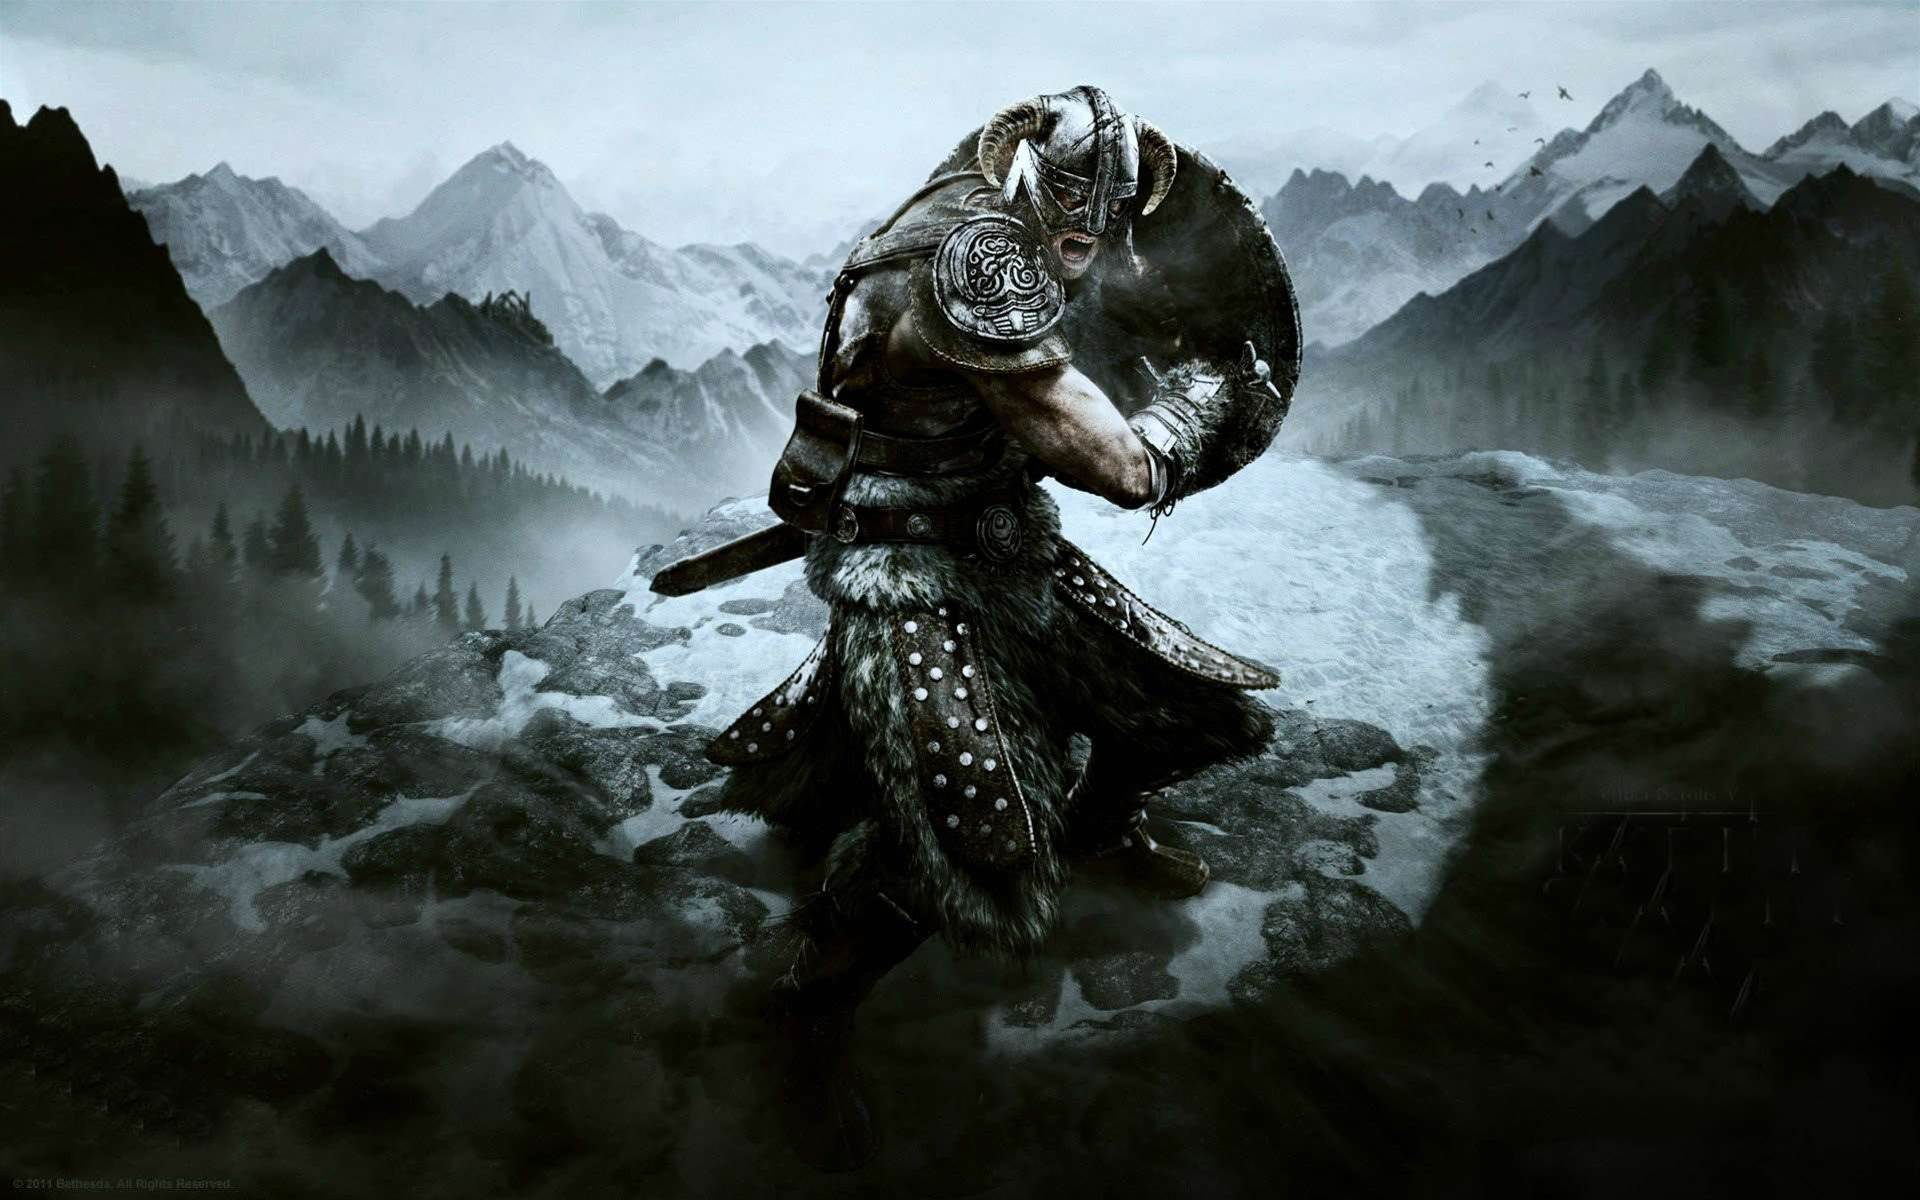 Ten reasons to buy The Elder Scrolls V: Skyrim